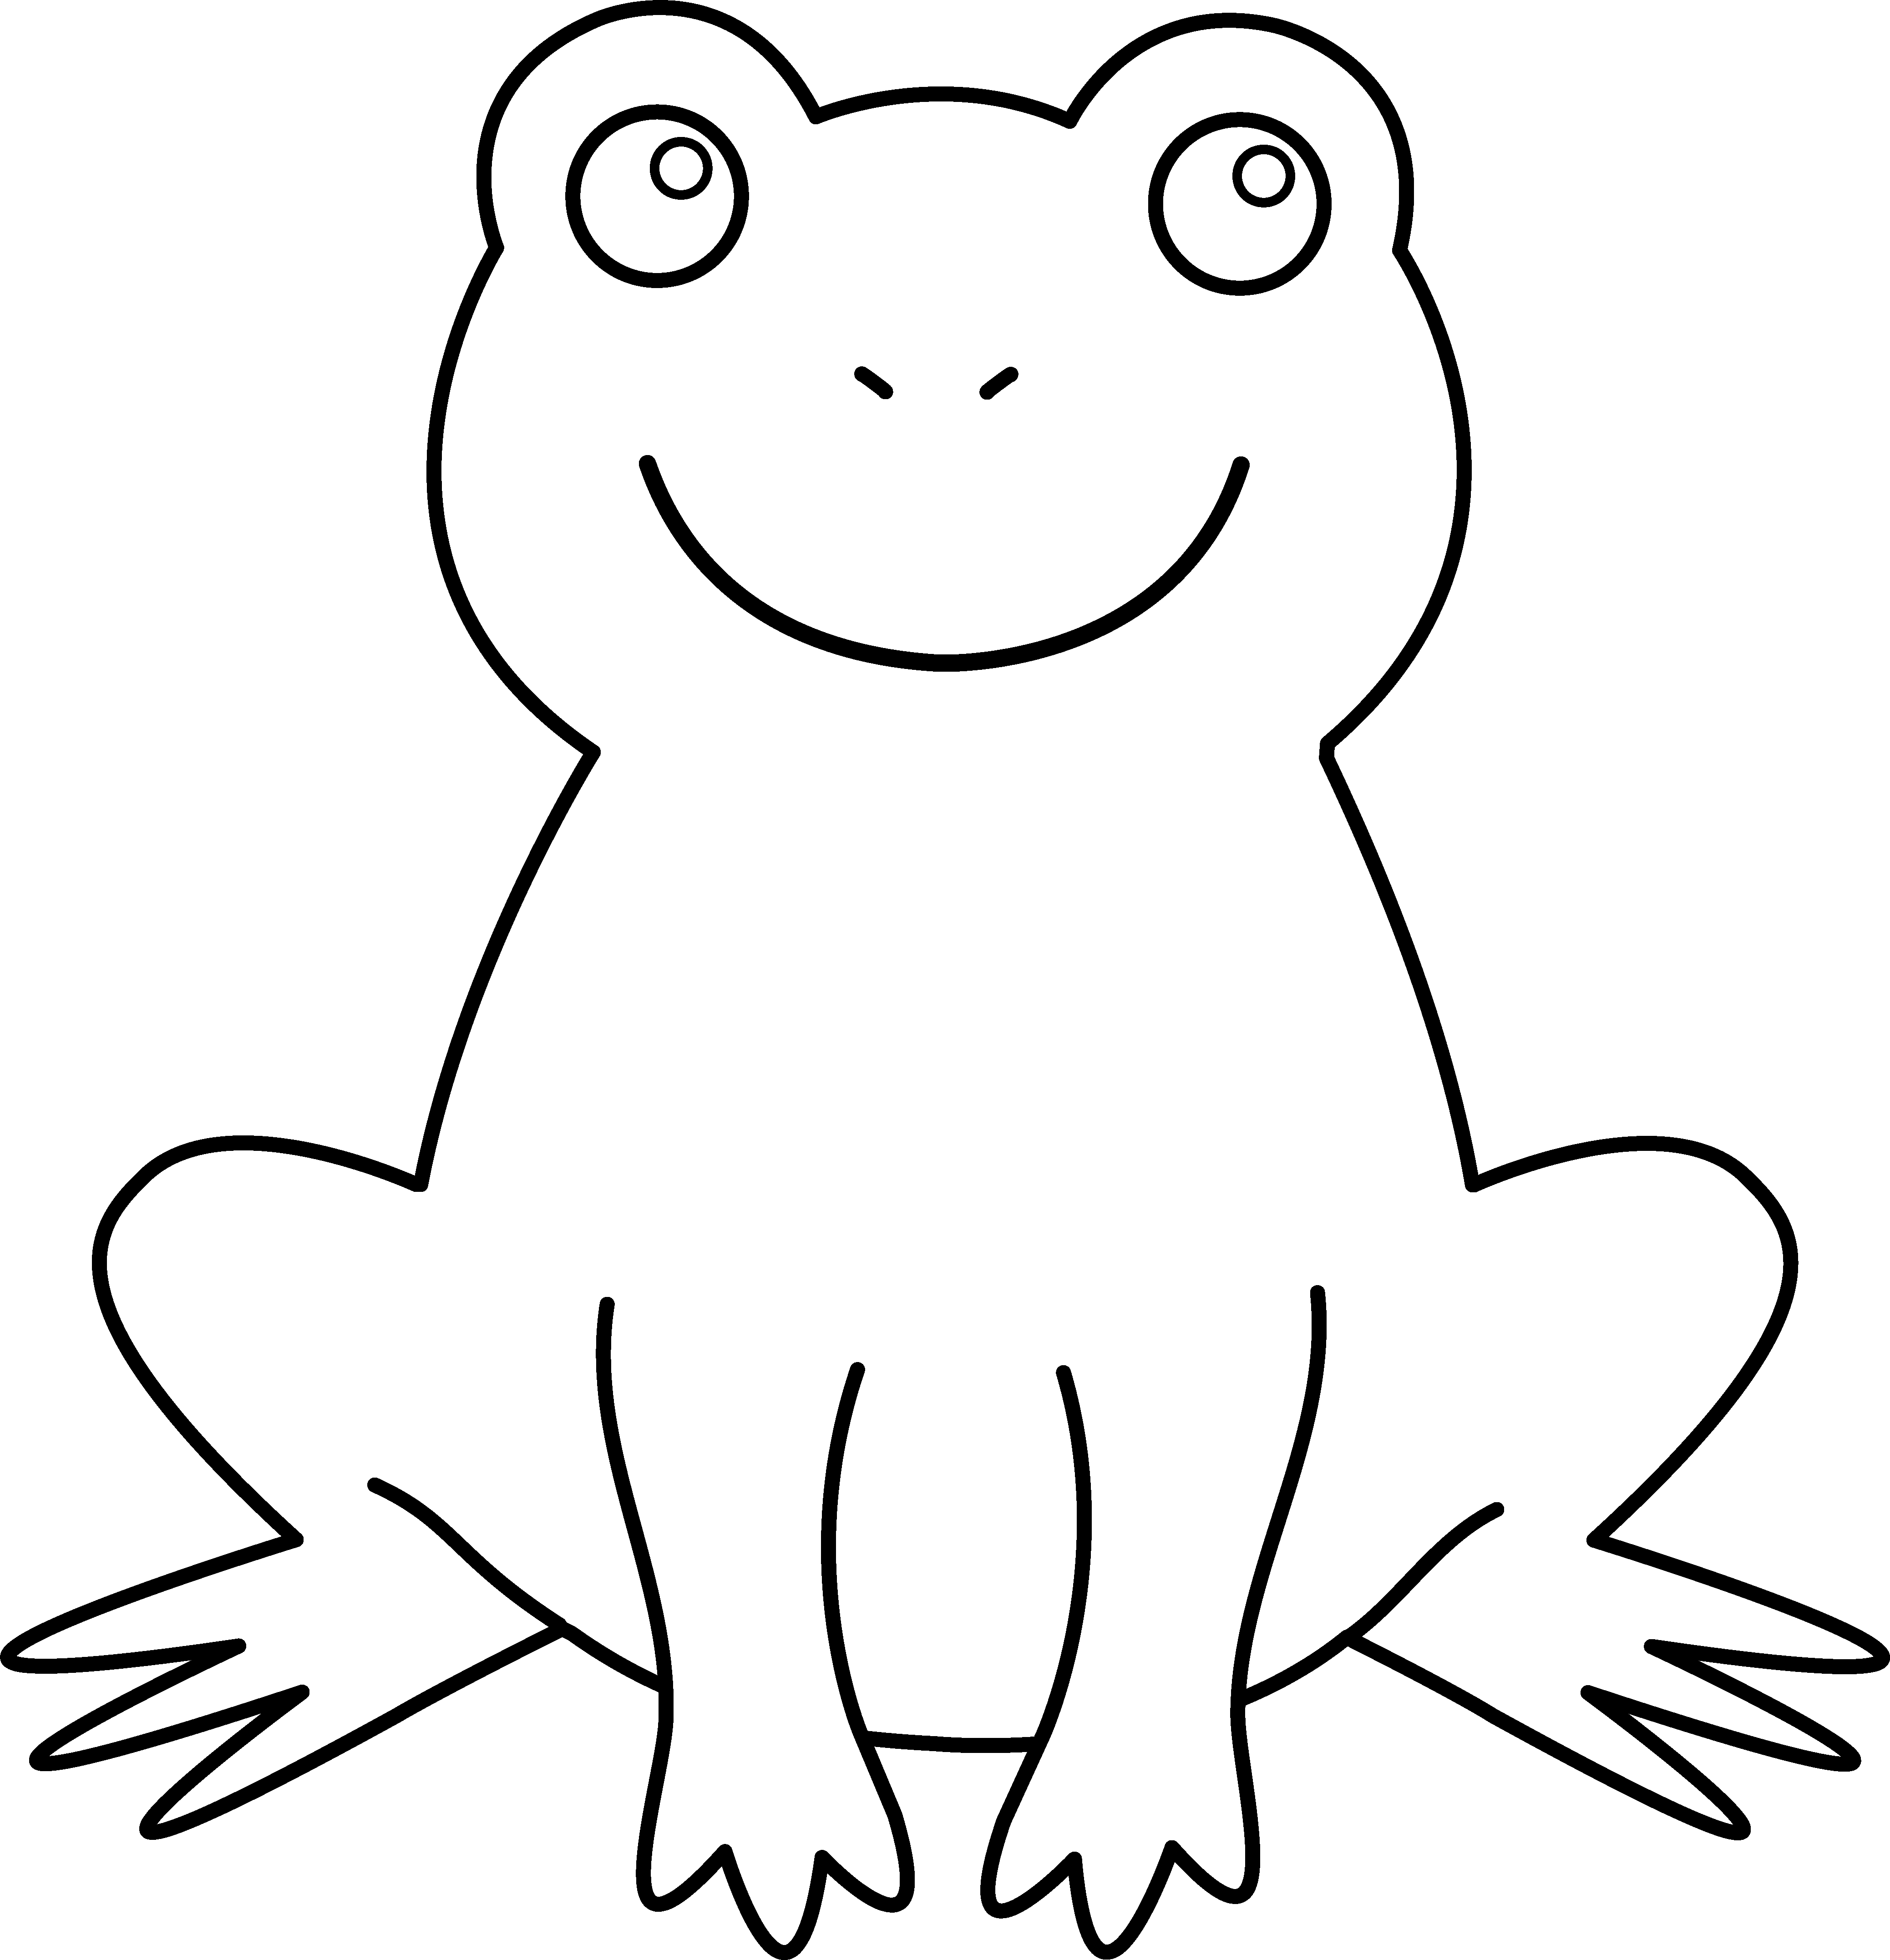 Frog clipart black and white. Free cute clip art